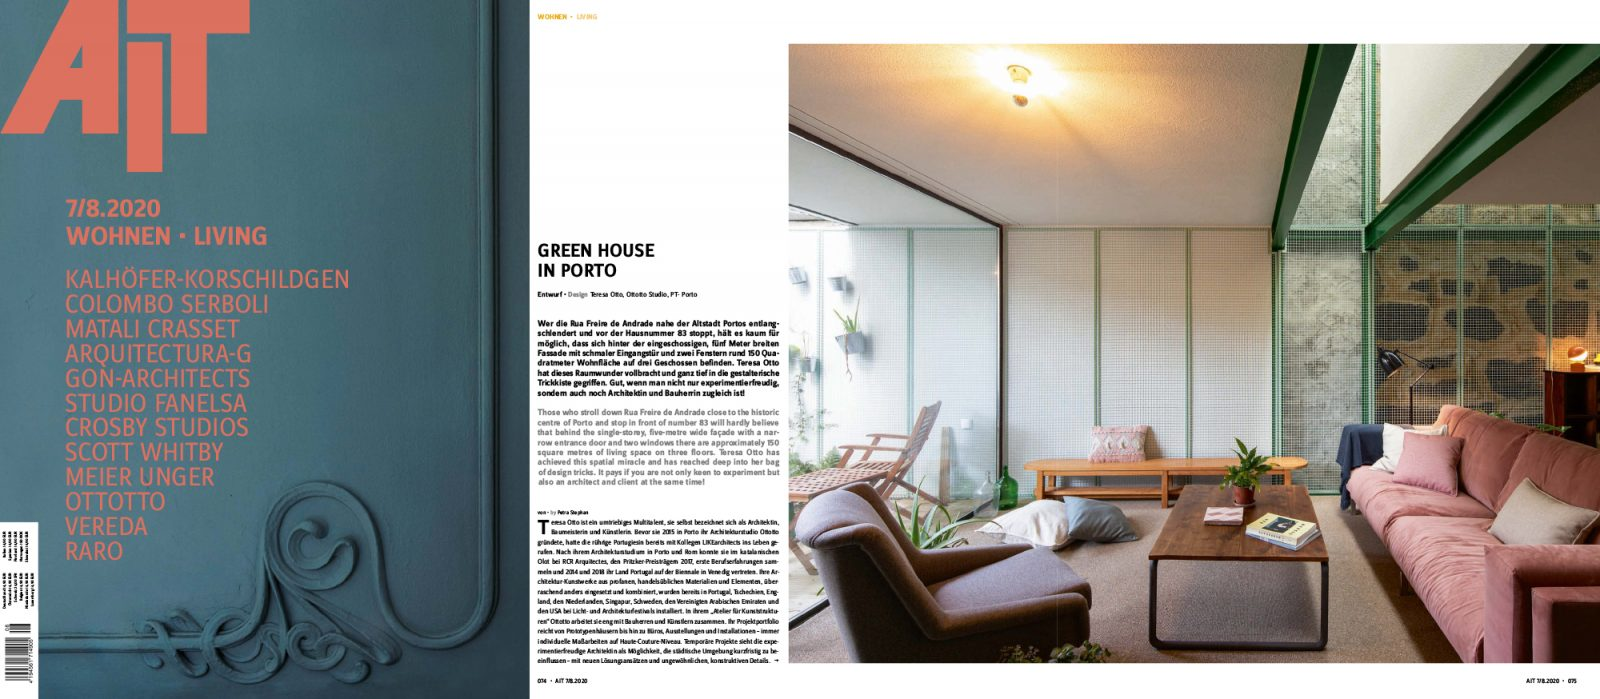 Magazine spread about Green House